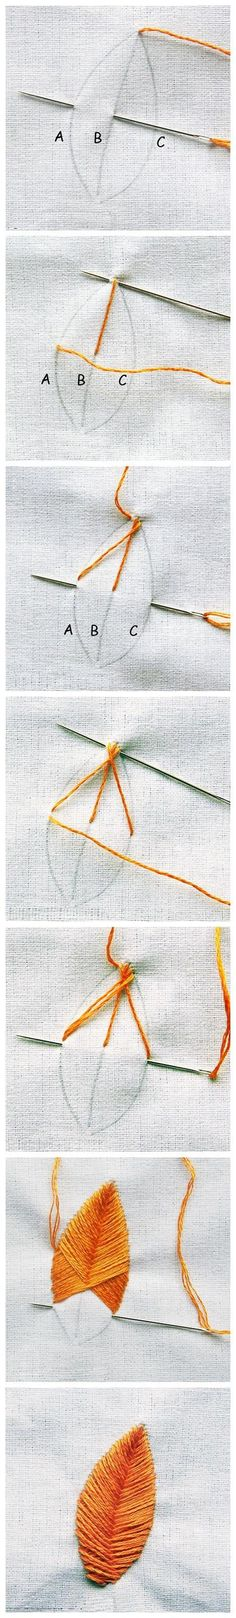 Leaf sew, craft, embroid leav, embroidery stitches, leaves, feather, diy, embroideri, old jeans